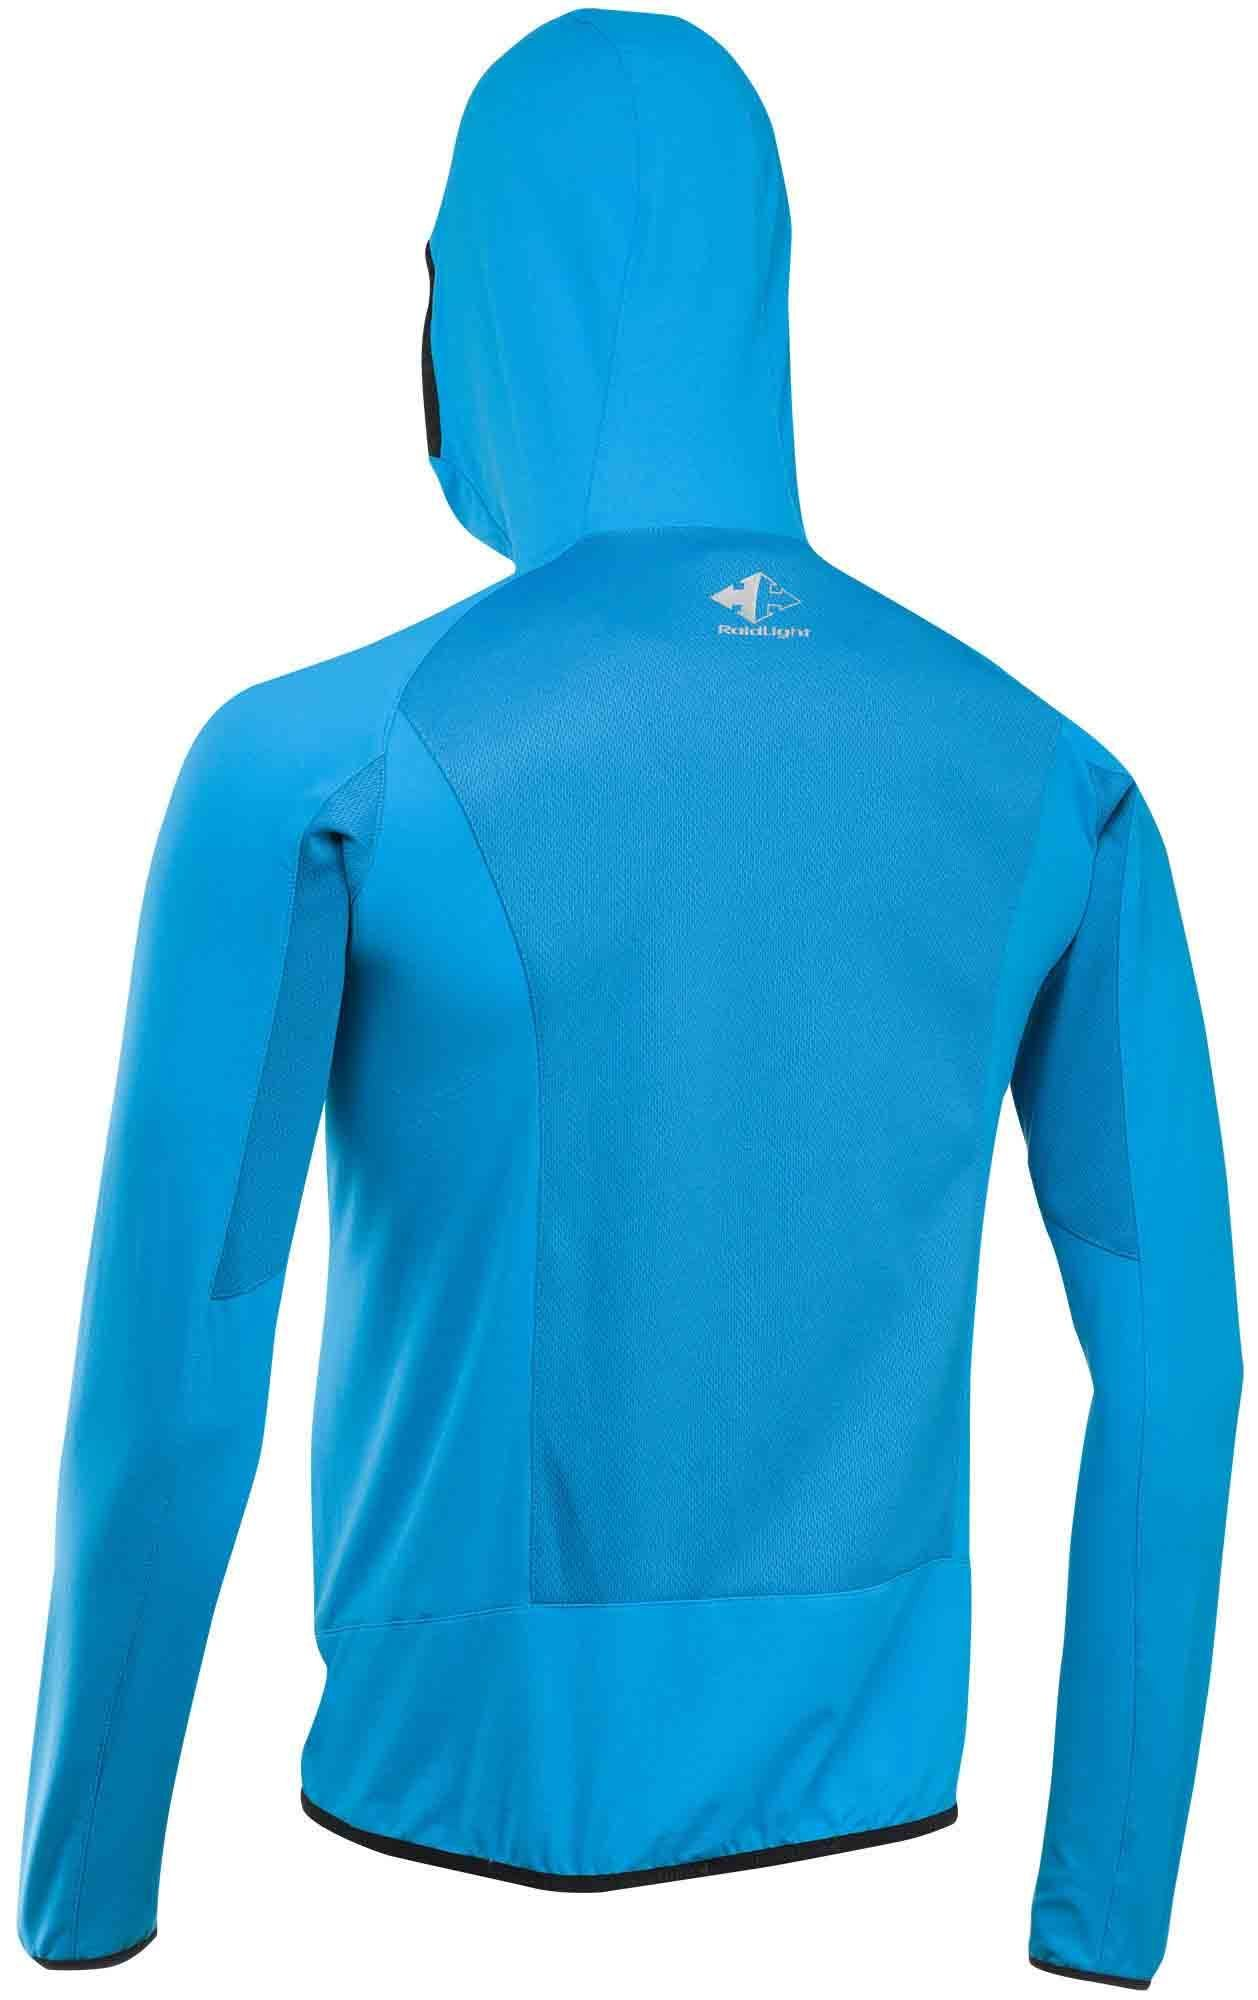 GIACCA RAIDLIGHT WINTERTRAIL HYBRID JACKET GLHMJ10 BLUE BACK VIEW.jpg